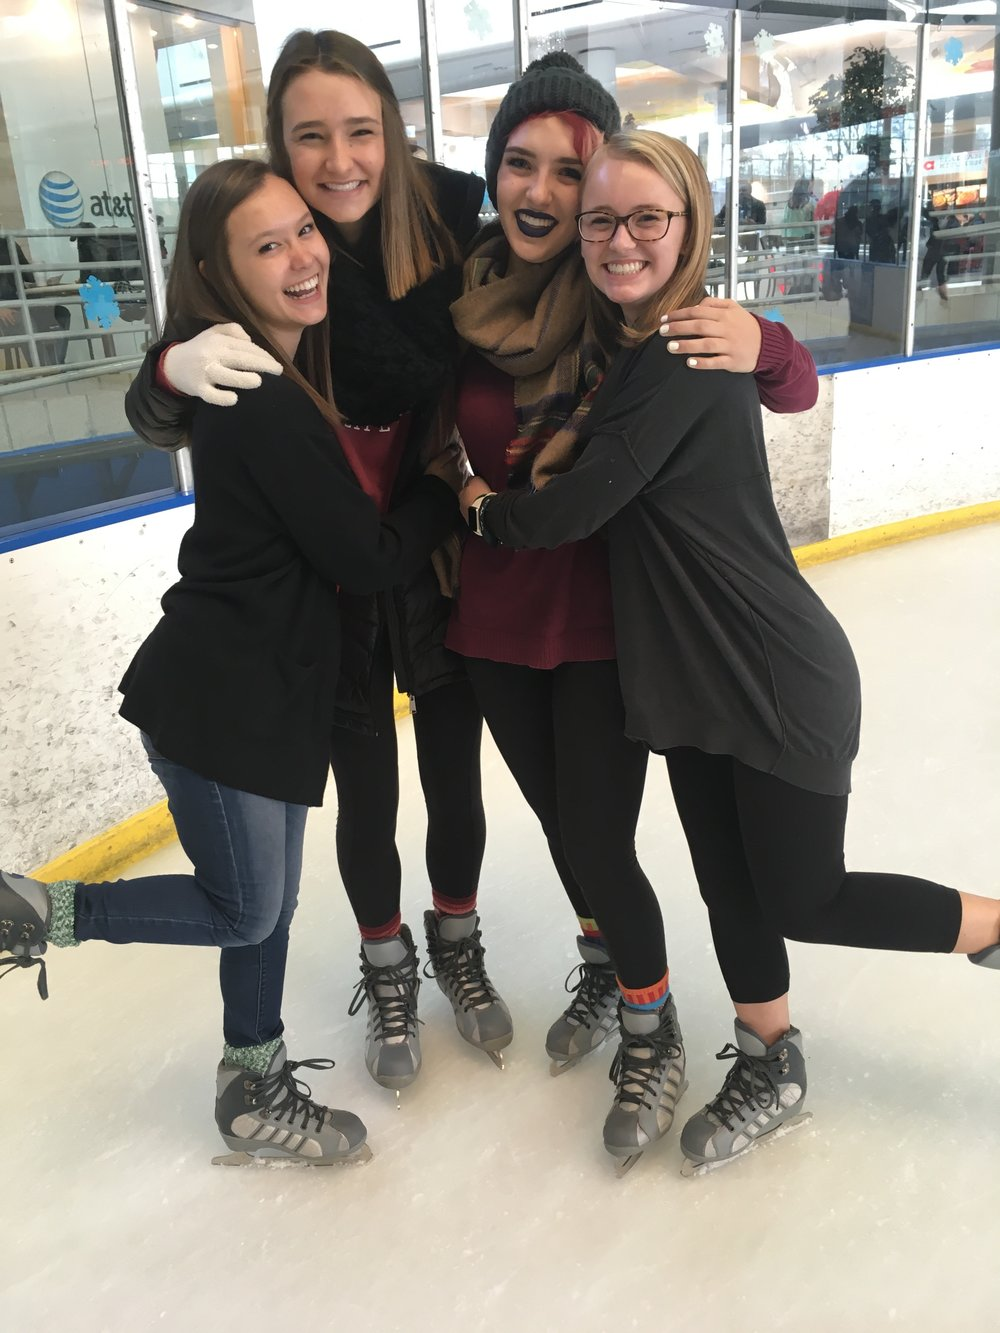 iceskating-sisterhood-xo-winter.JPG